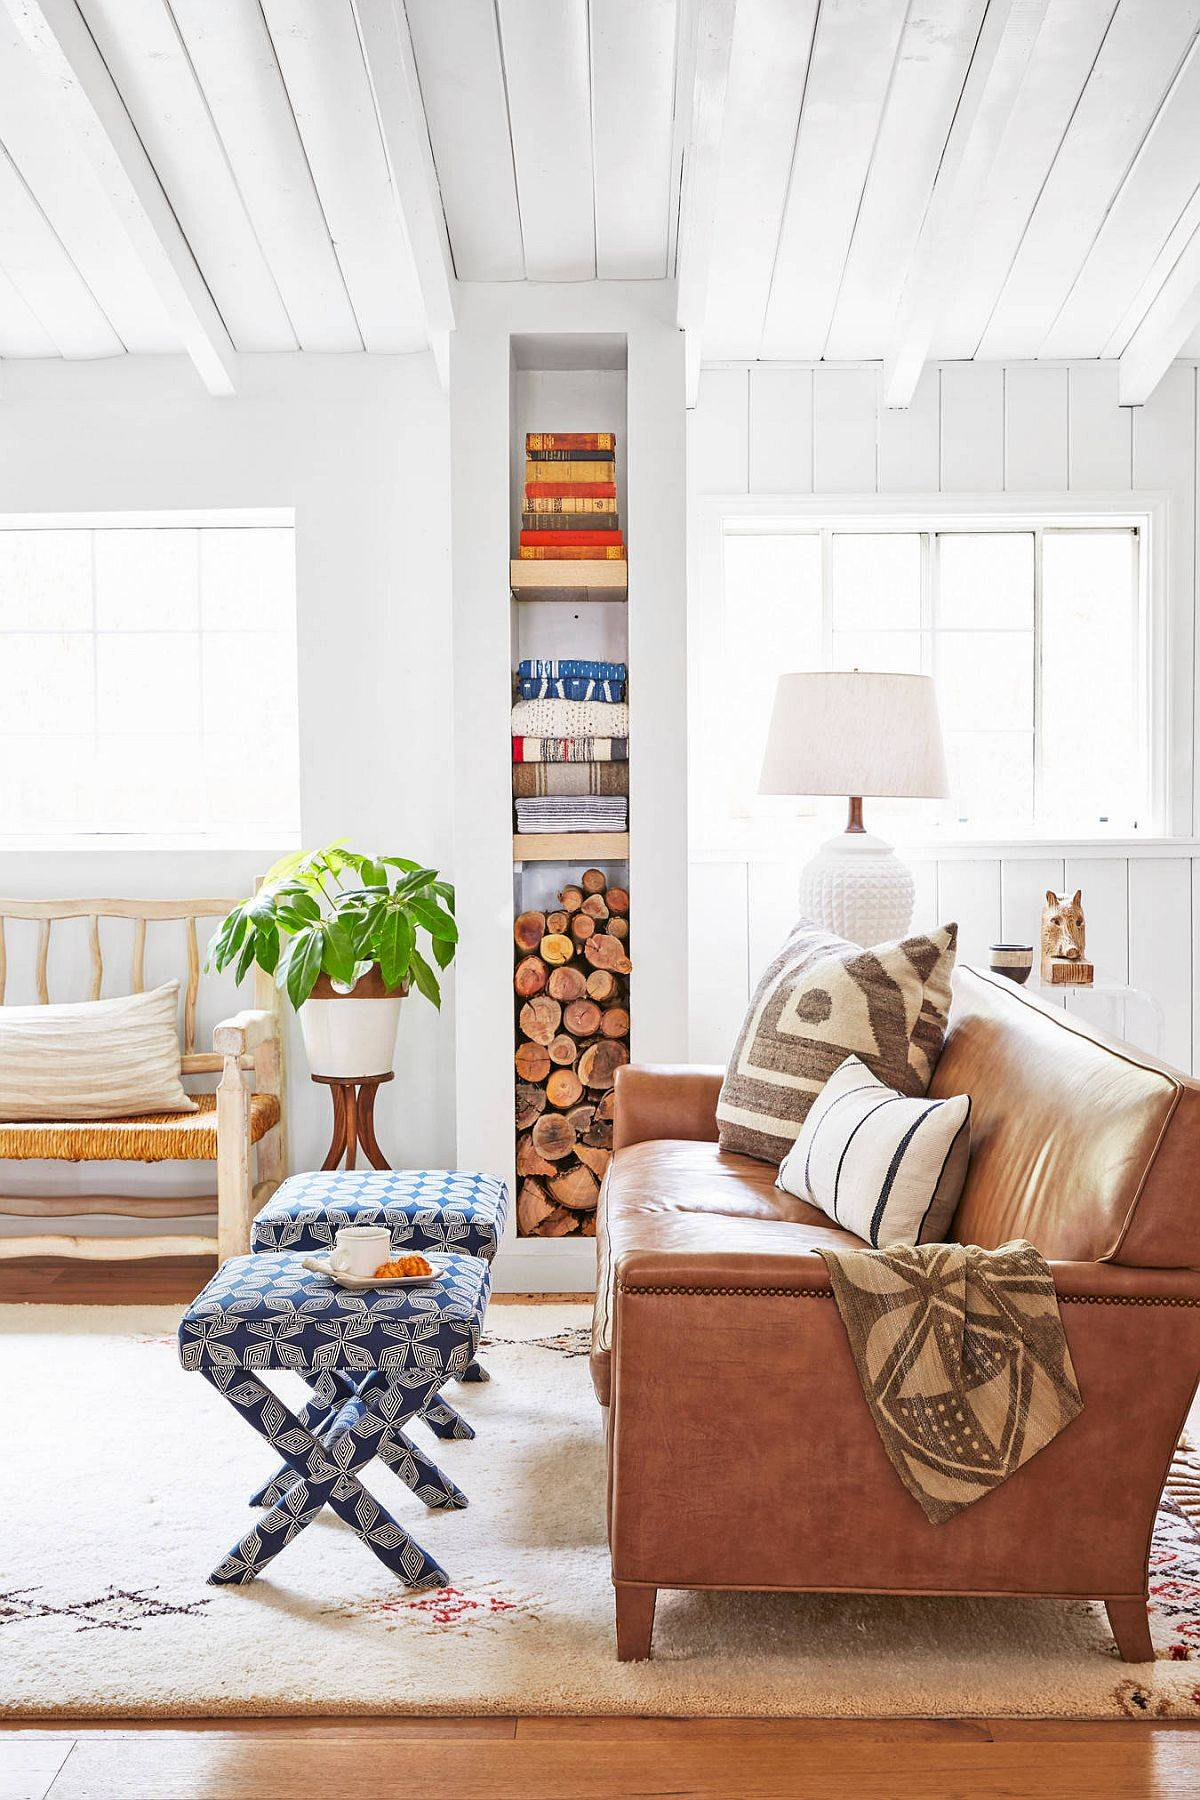 Books-and-logs-of-wood-usher-texture-into-this-beach-style-home-72727